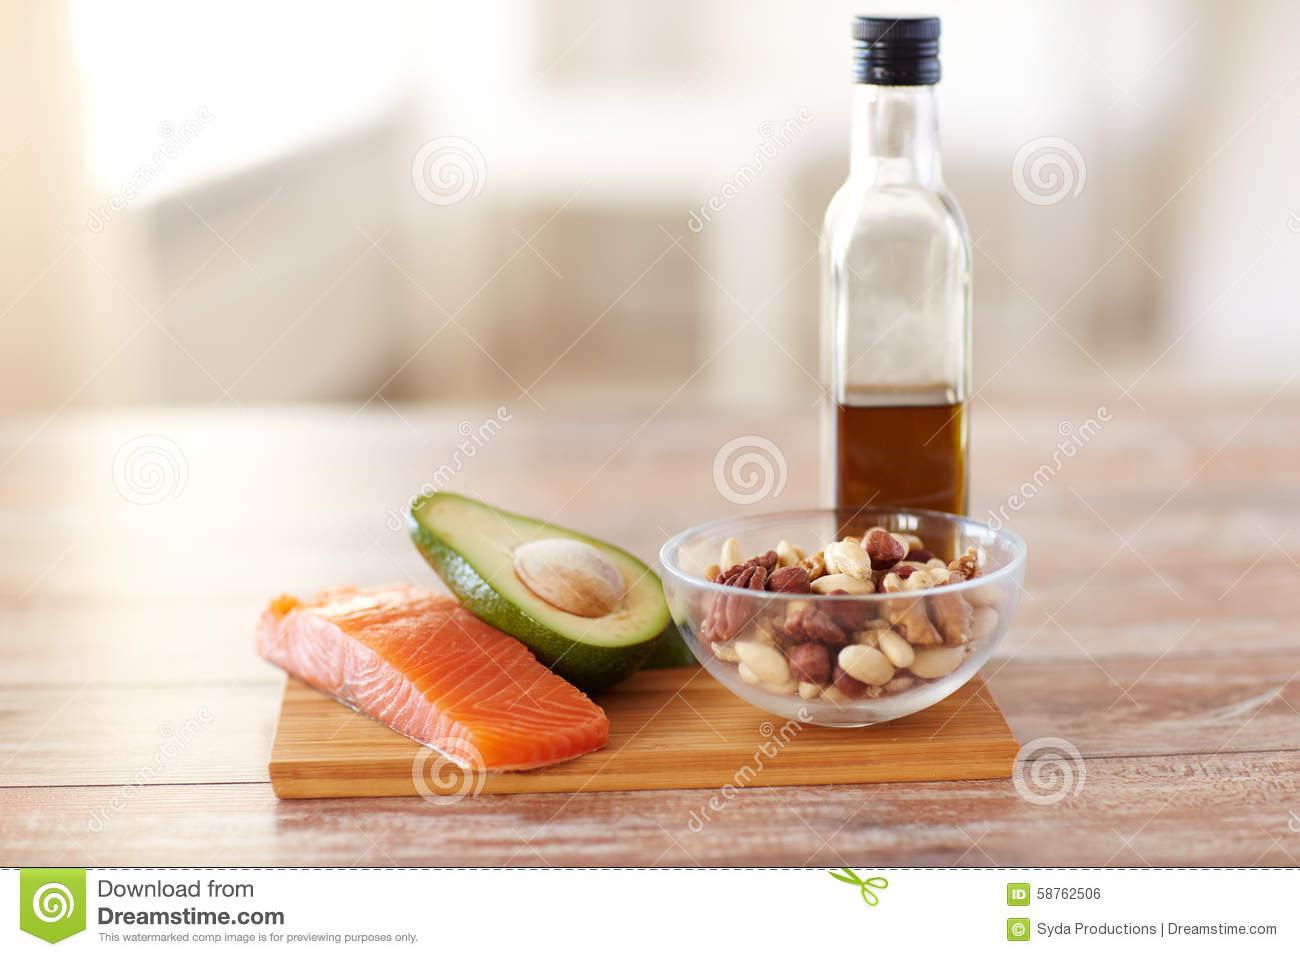 Close up of food and olive oil bottle on table stock photo for Eating table